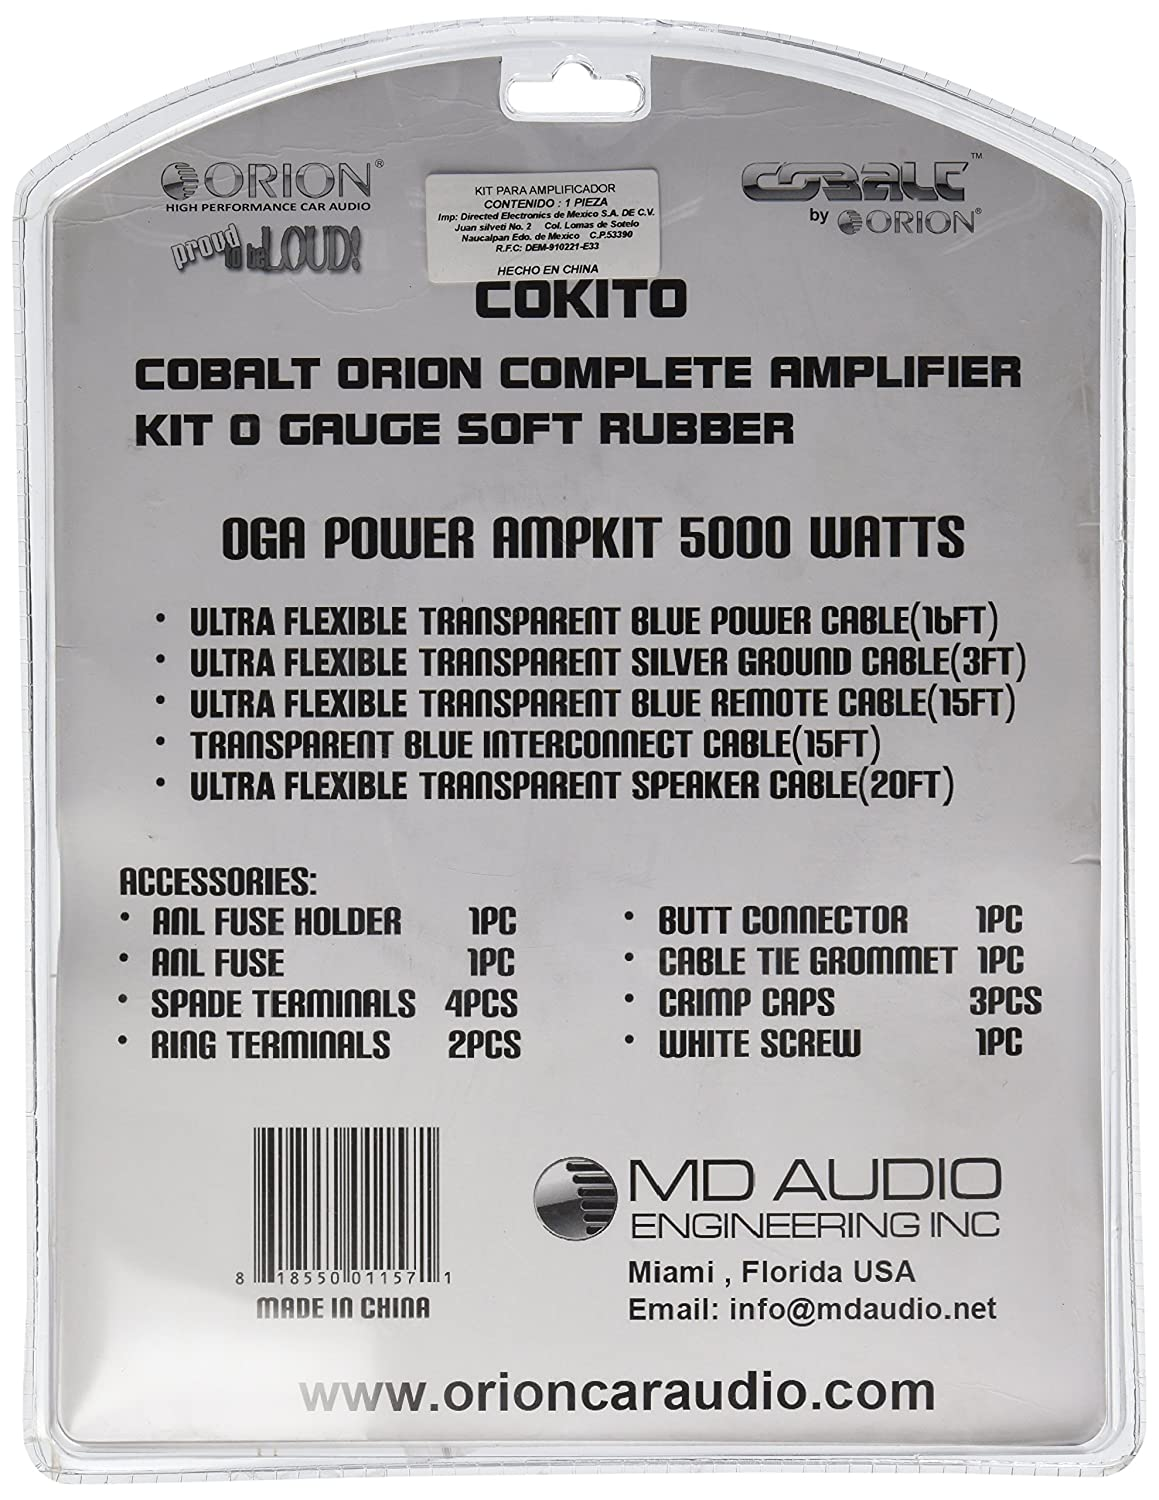 Amazon.com: ORION COKIT0 - Install Kit AMP 0 Ga Cobalt Soft Rubber Orion: Health & Personal Care